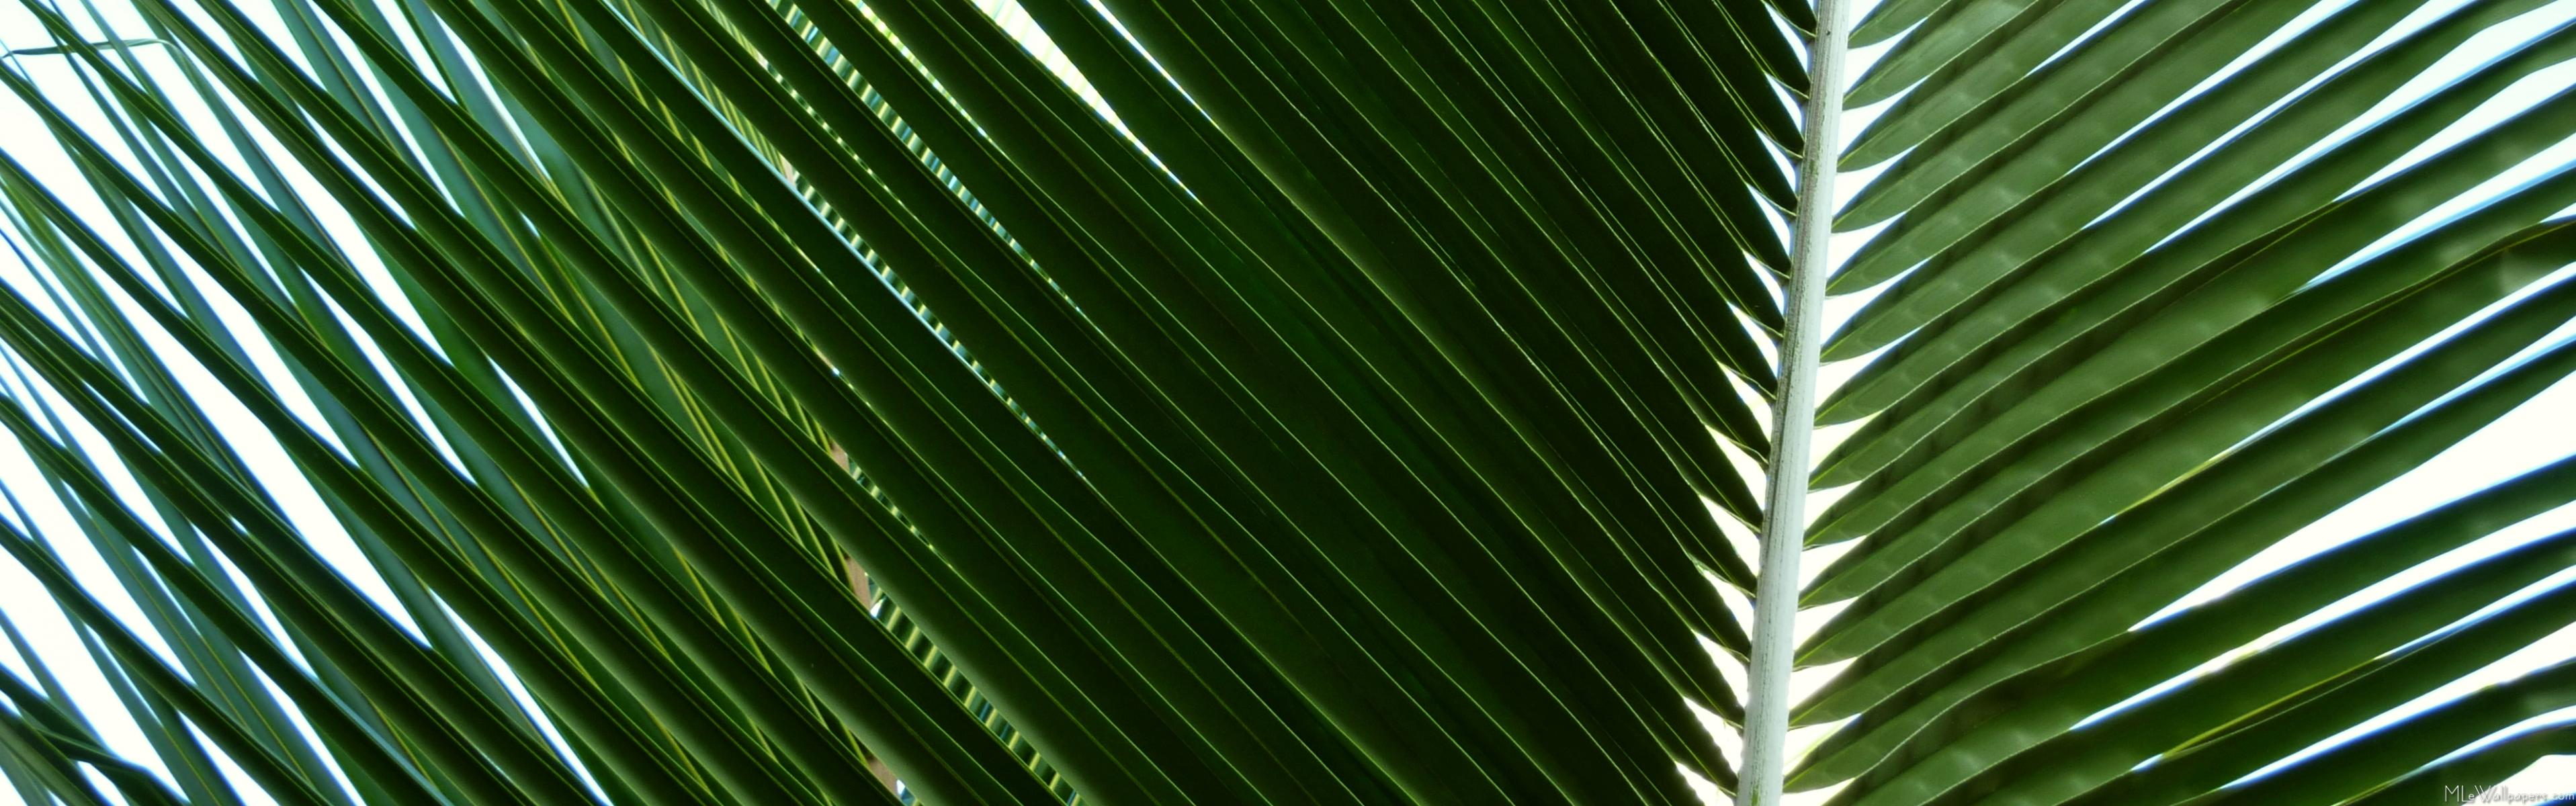 palm fronds tumblr - photo #14